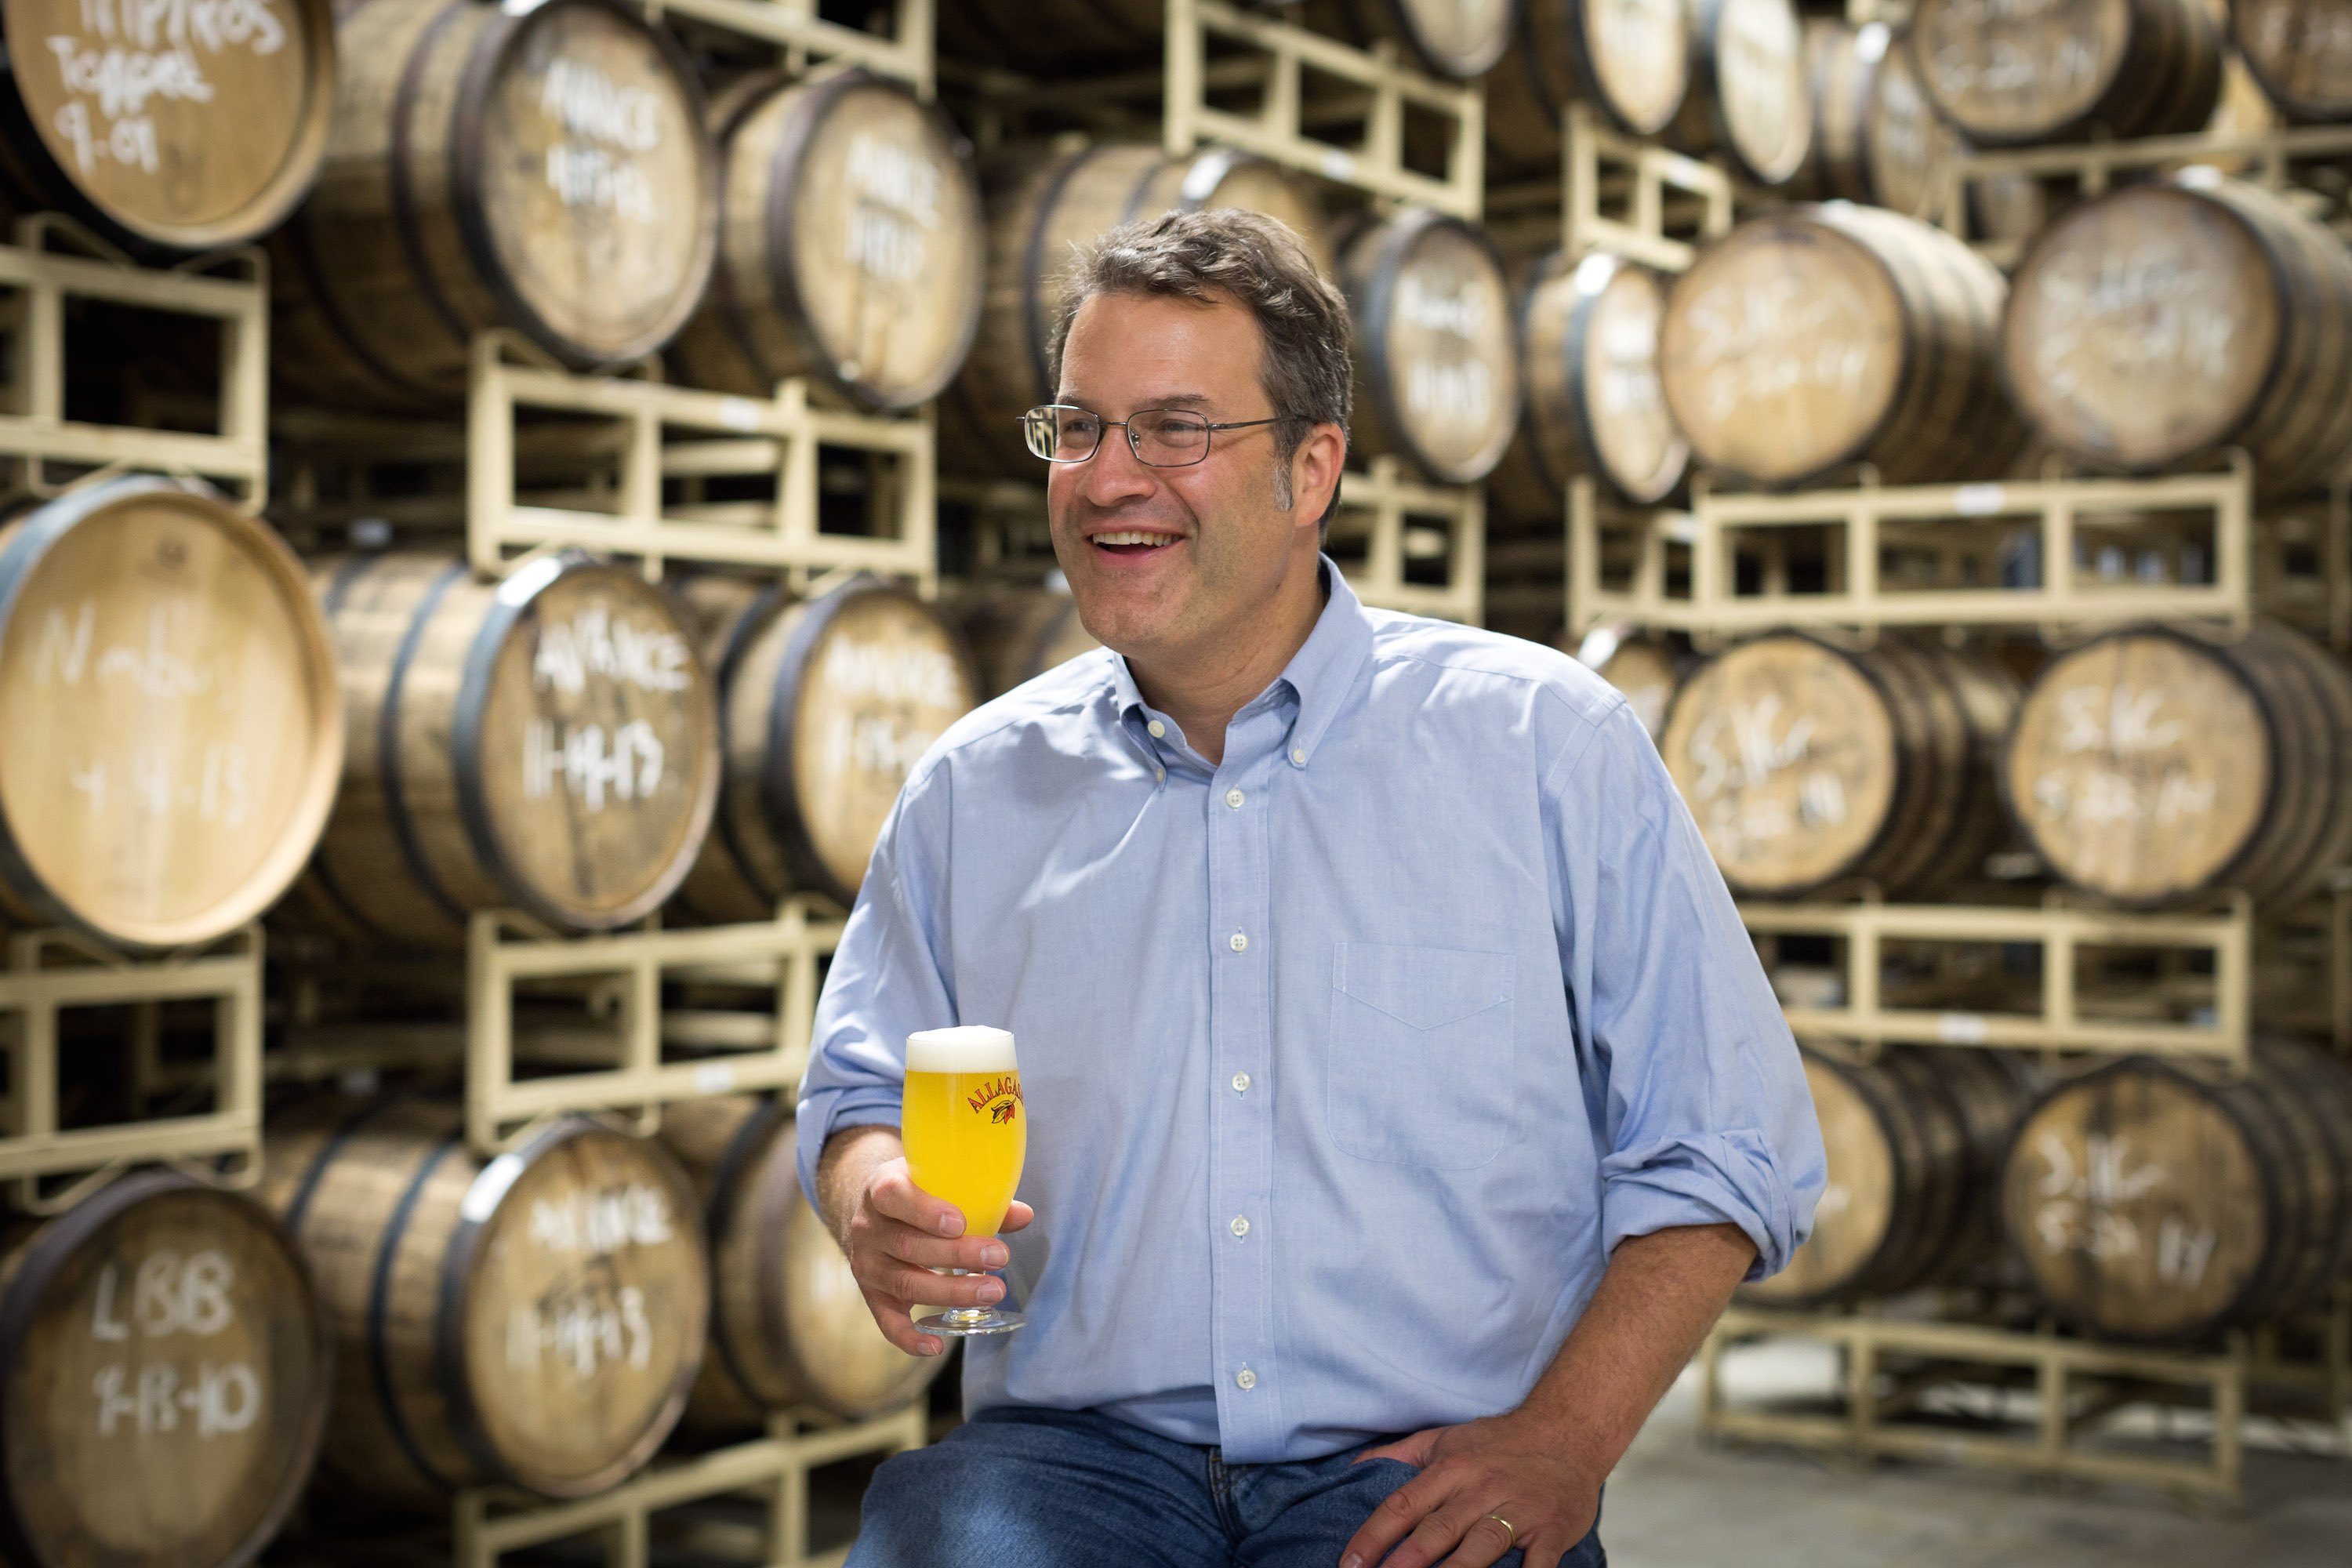 Rob Tod, founder of Allagash Brewing Company, in the wild barrel room, where the company's funkiest experiments take place.